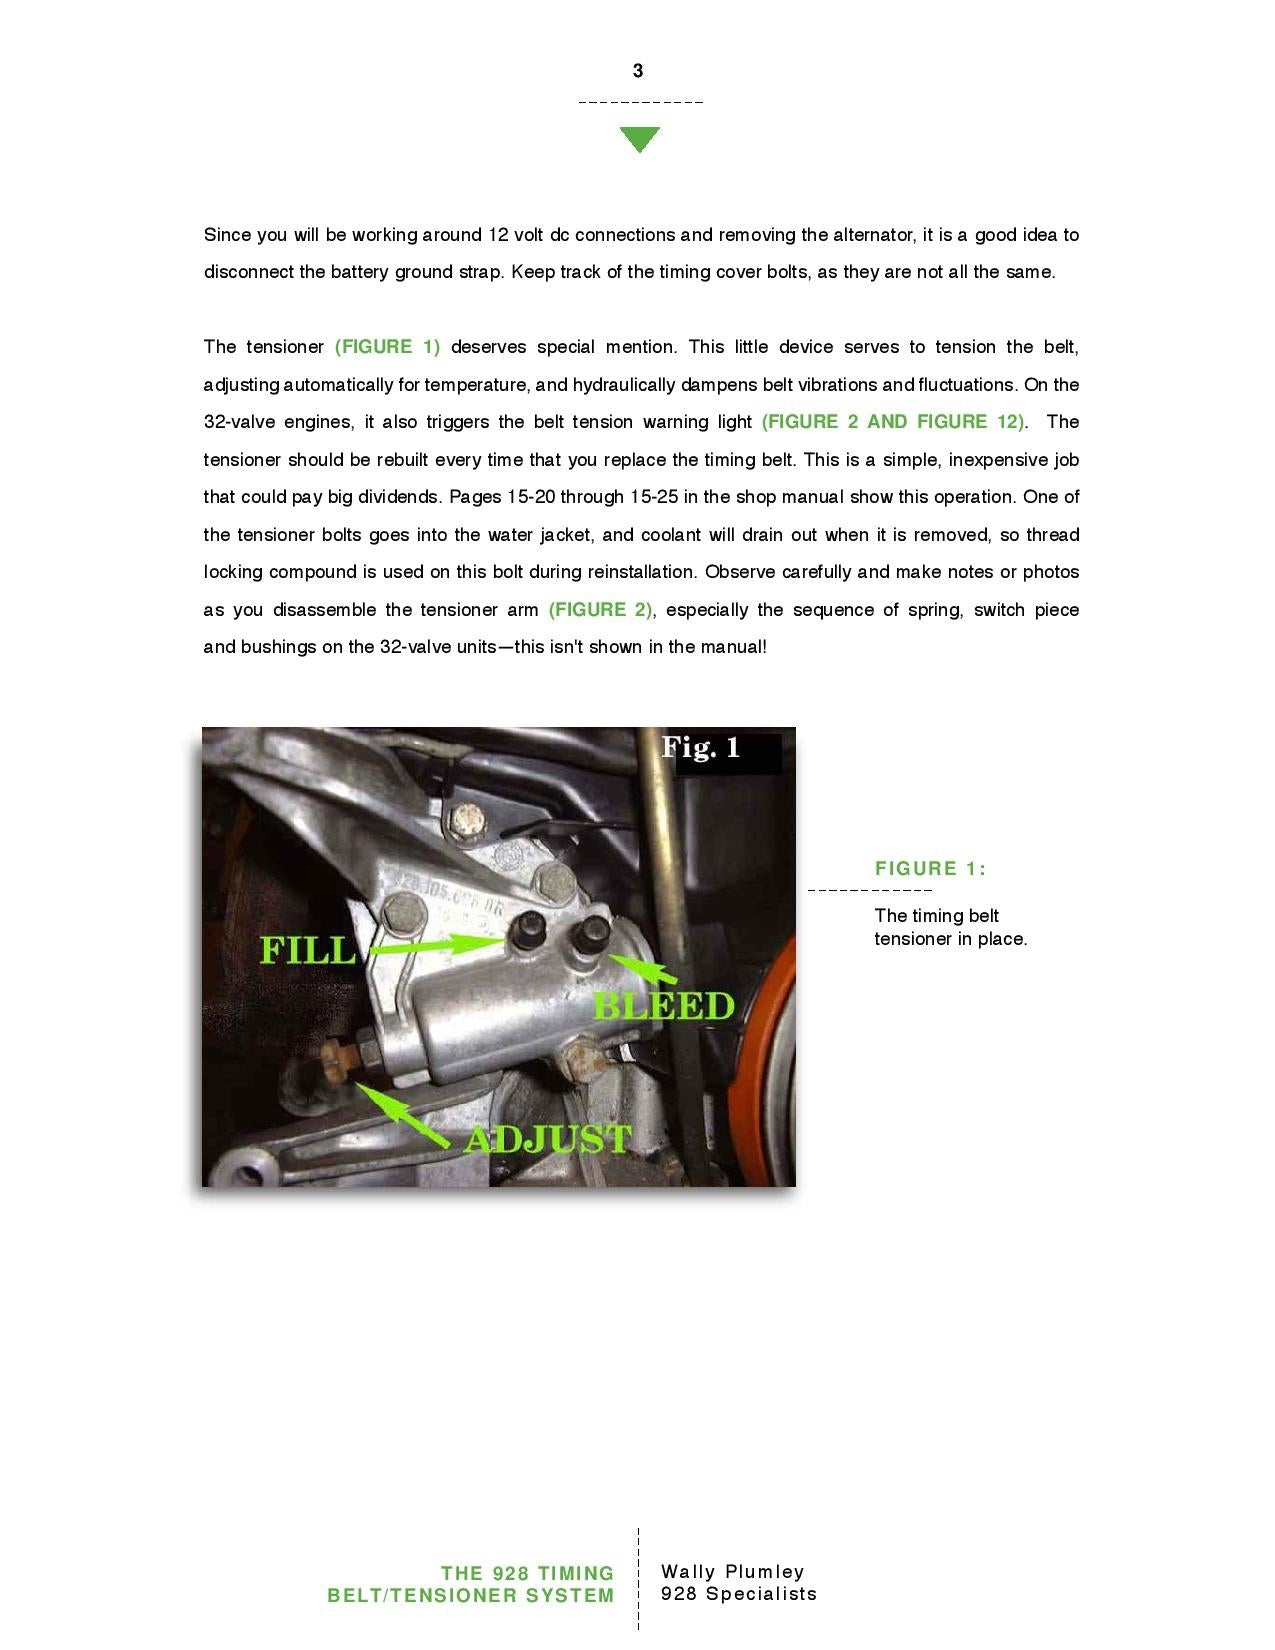 The 928 Timing Belt and Tensioner System pg3